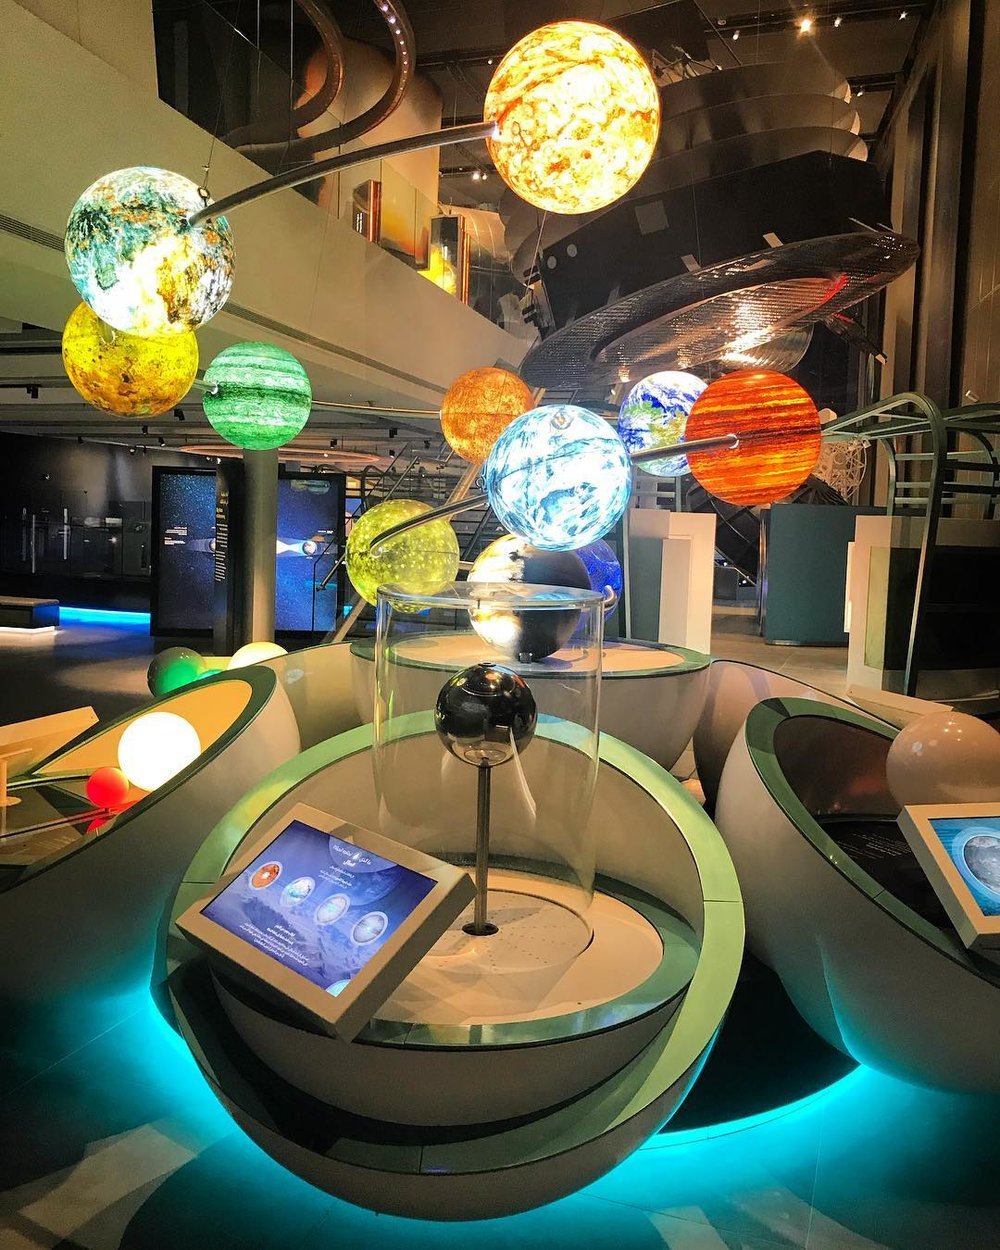 Planetary Science Gallery SAASCC Kuwait Museum